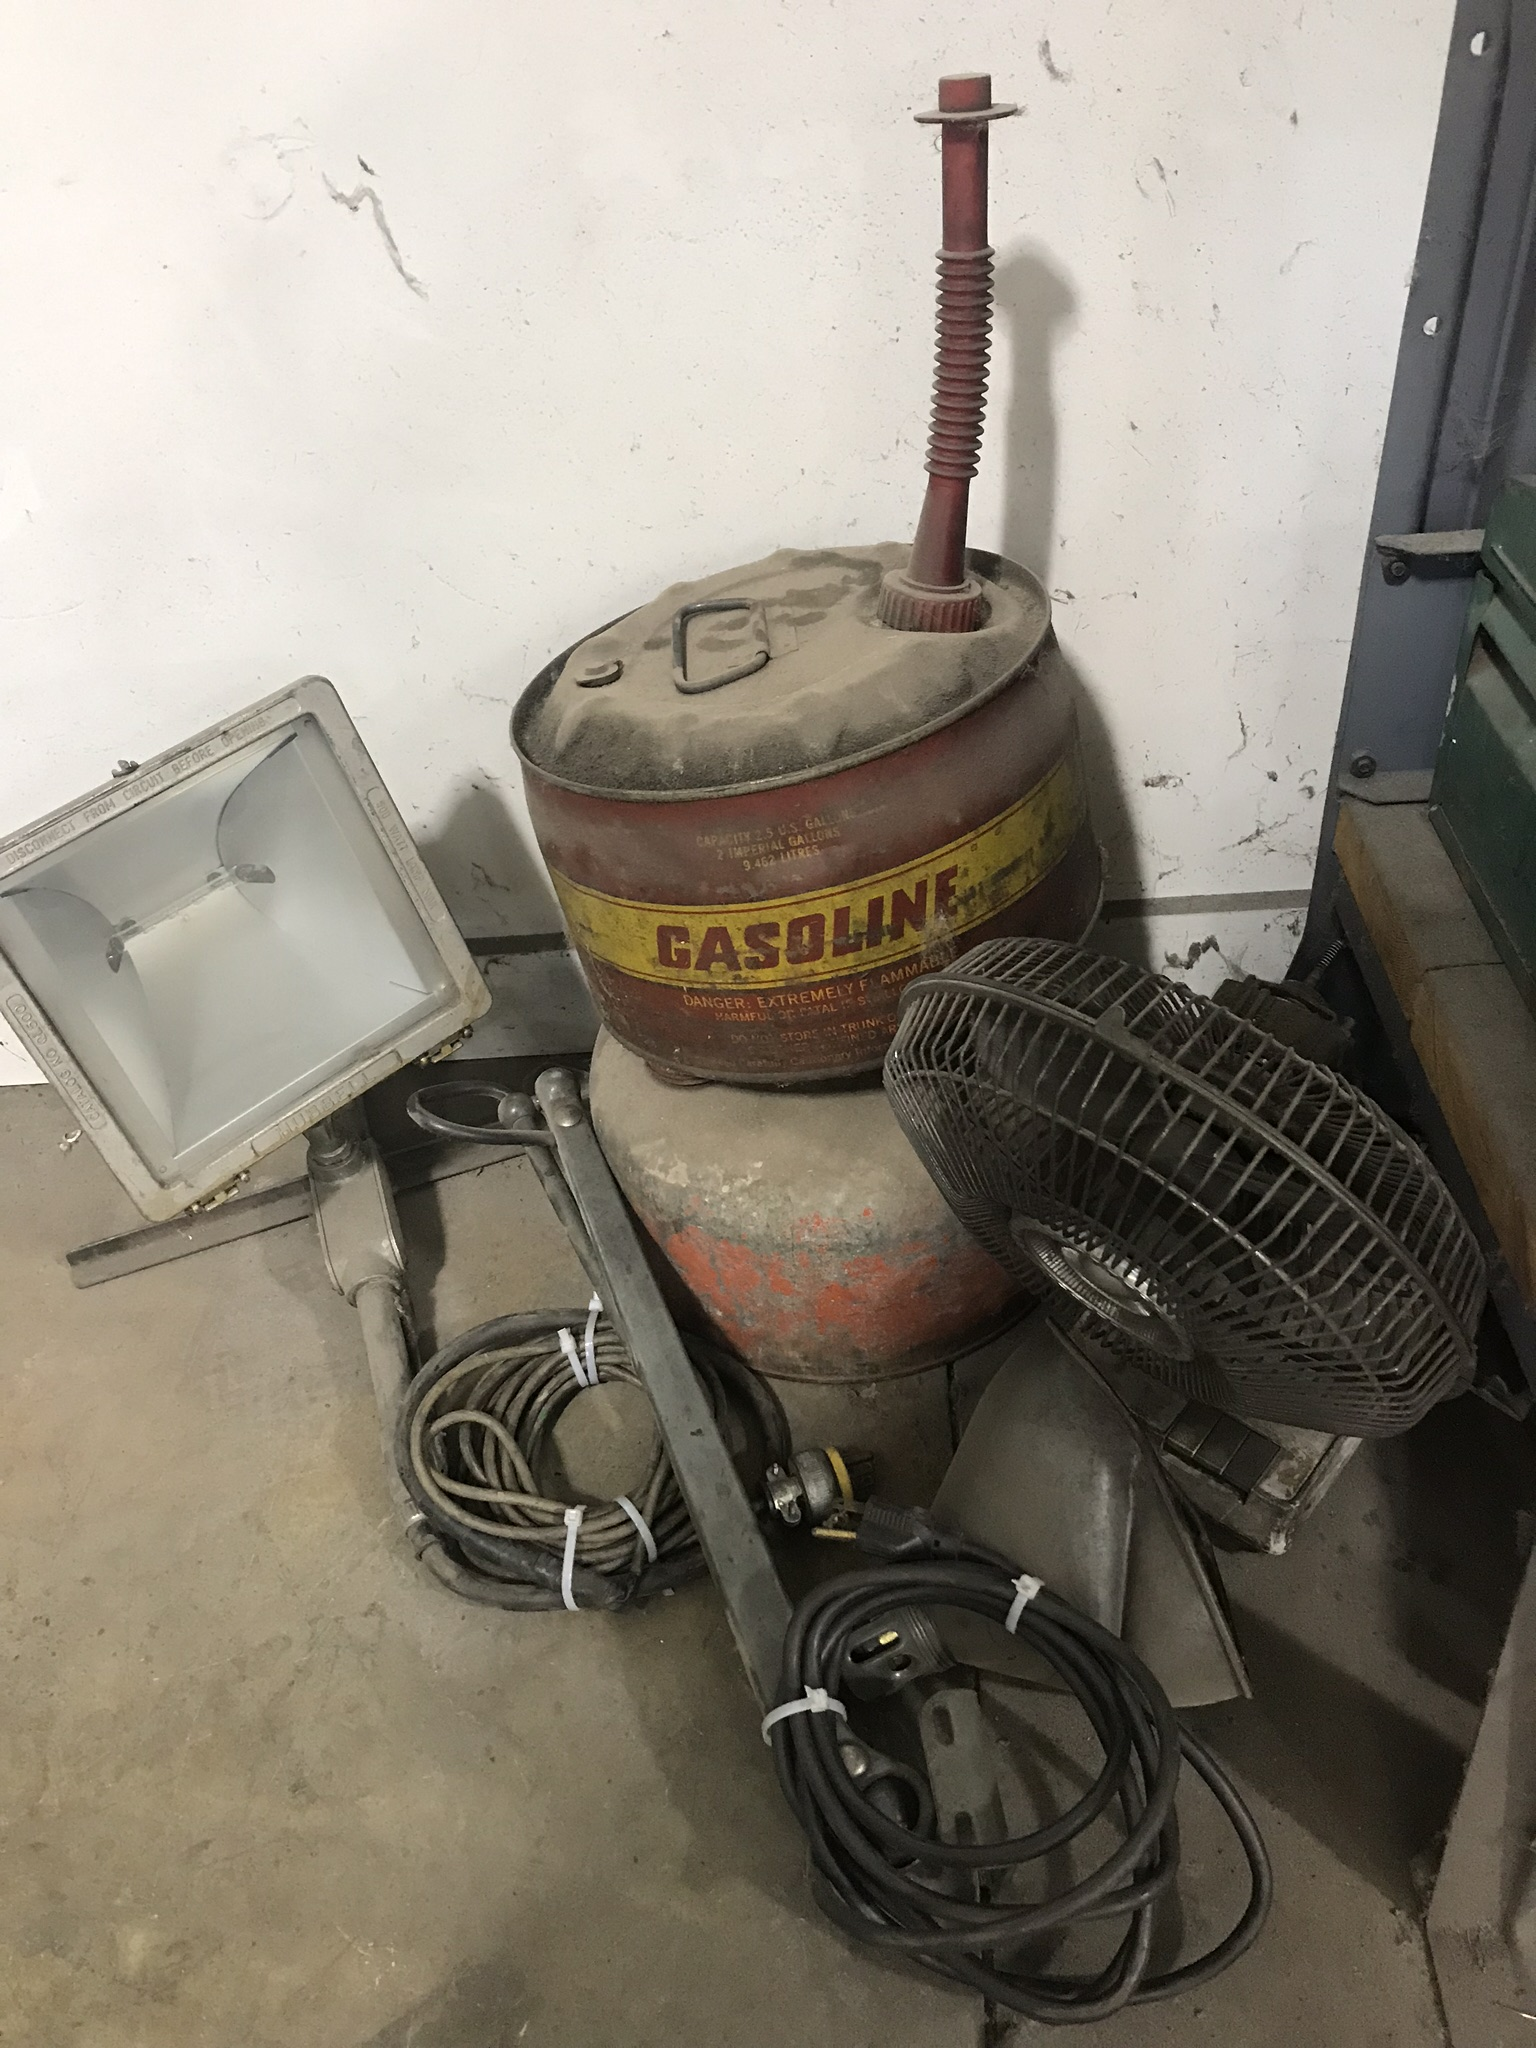 Lot-Tool Boxes, Rope, Electrical Cords, Tarps, Wheels, Fan, Light, - Image 2 of 3